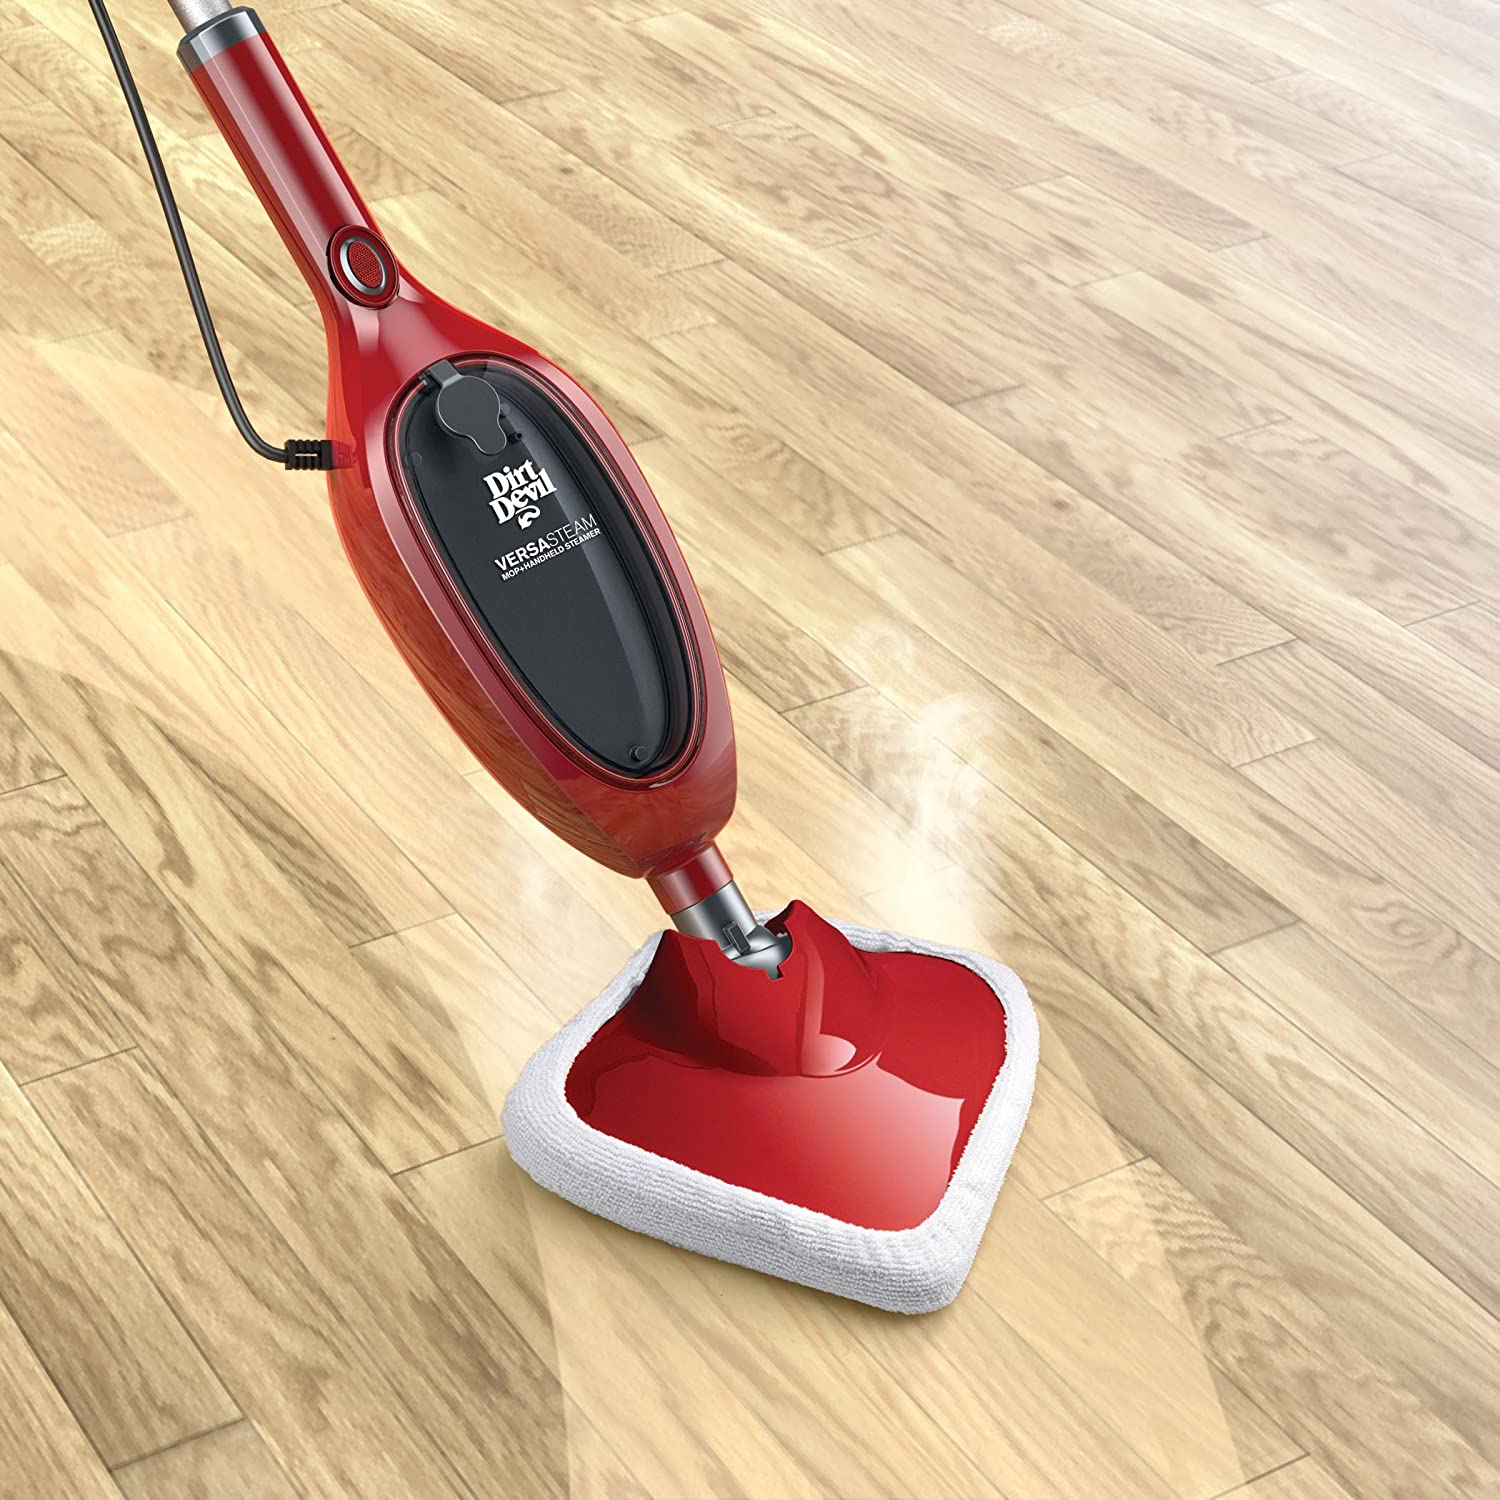 Amazon dirt devil steam mop 3 in 1 versa steam cleaner pd20100 dailygadgetfo Gallery